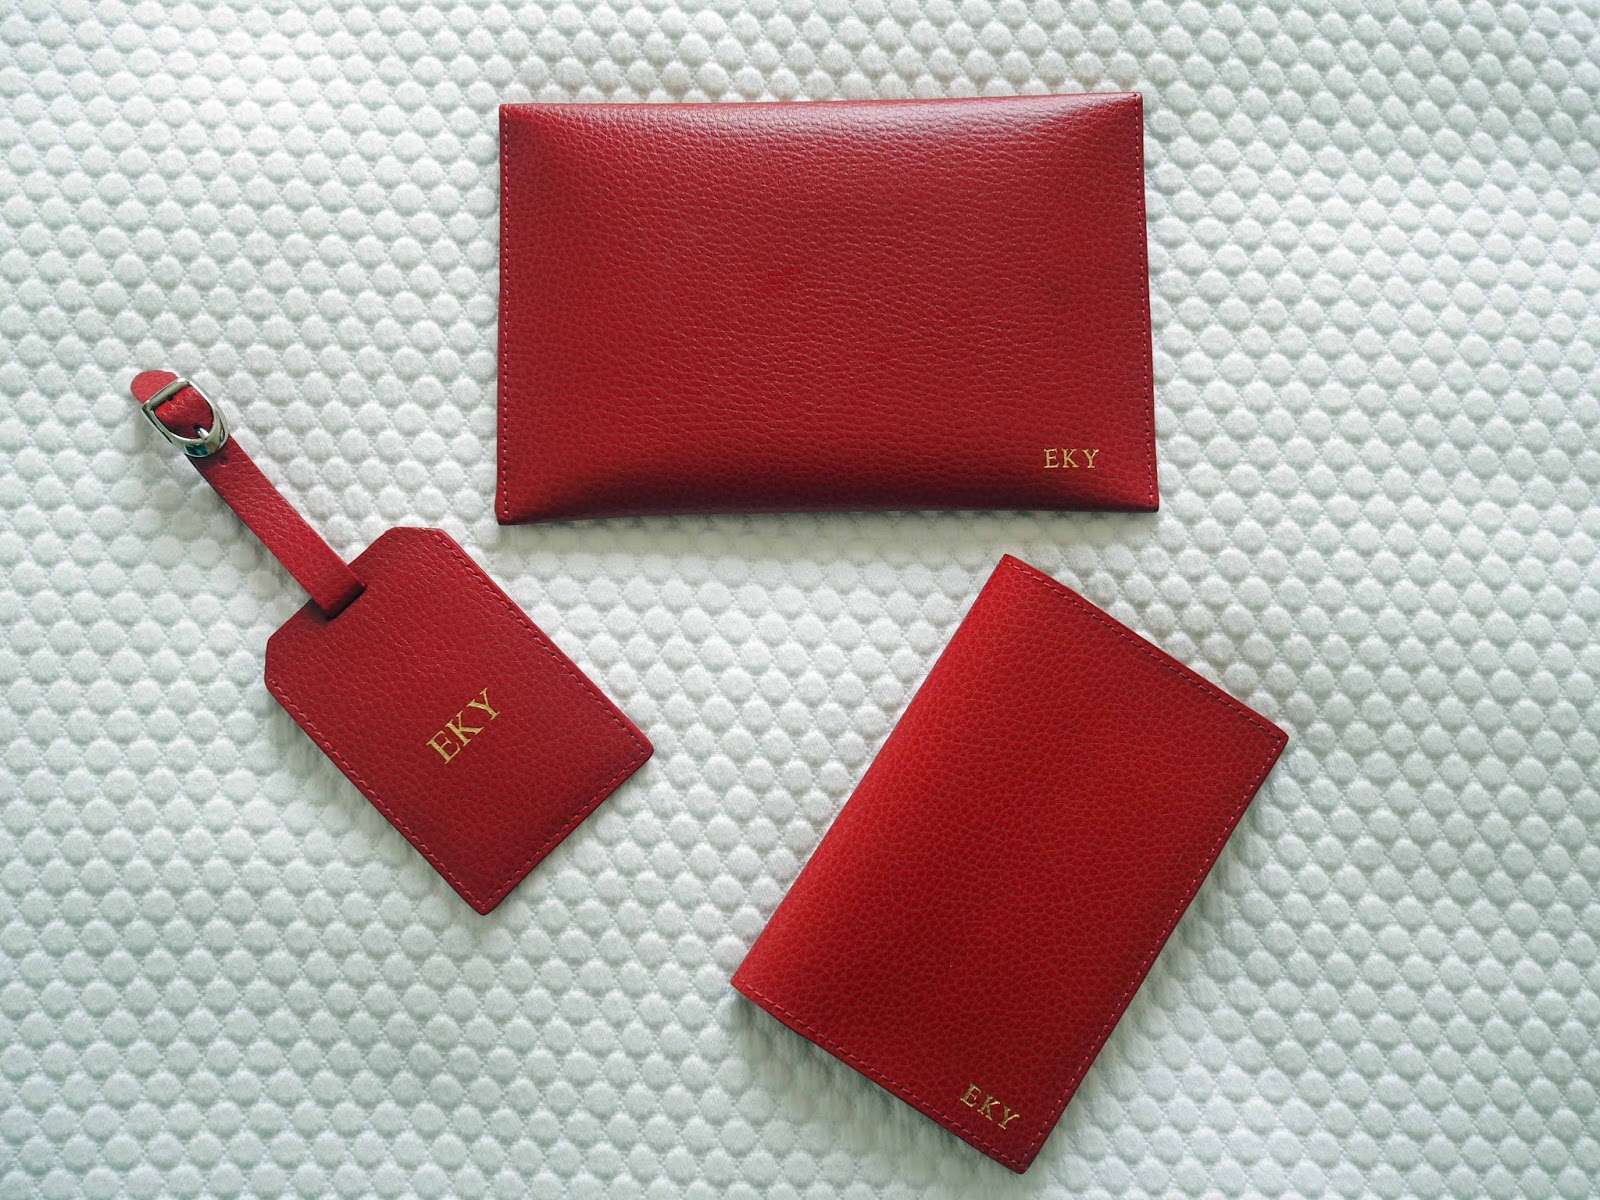 Pen-Heaven-monogrammed-embosssed-passport-holder-travel-wallet-luggage-tag-red-leather